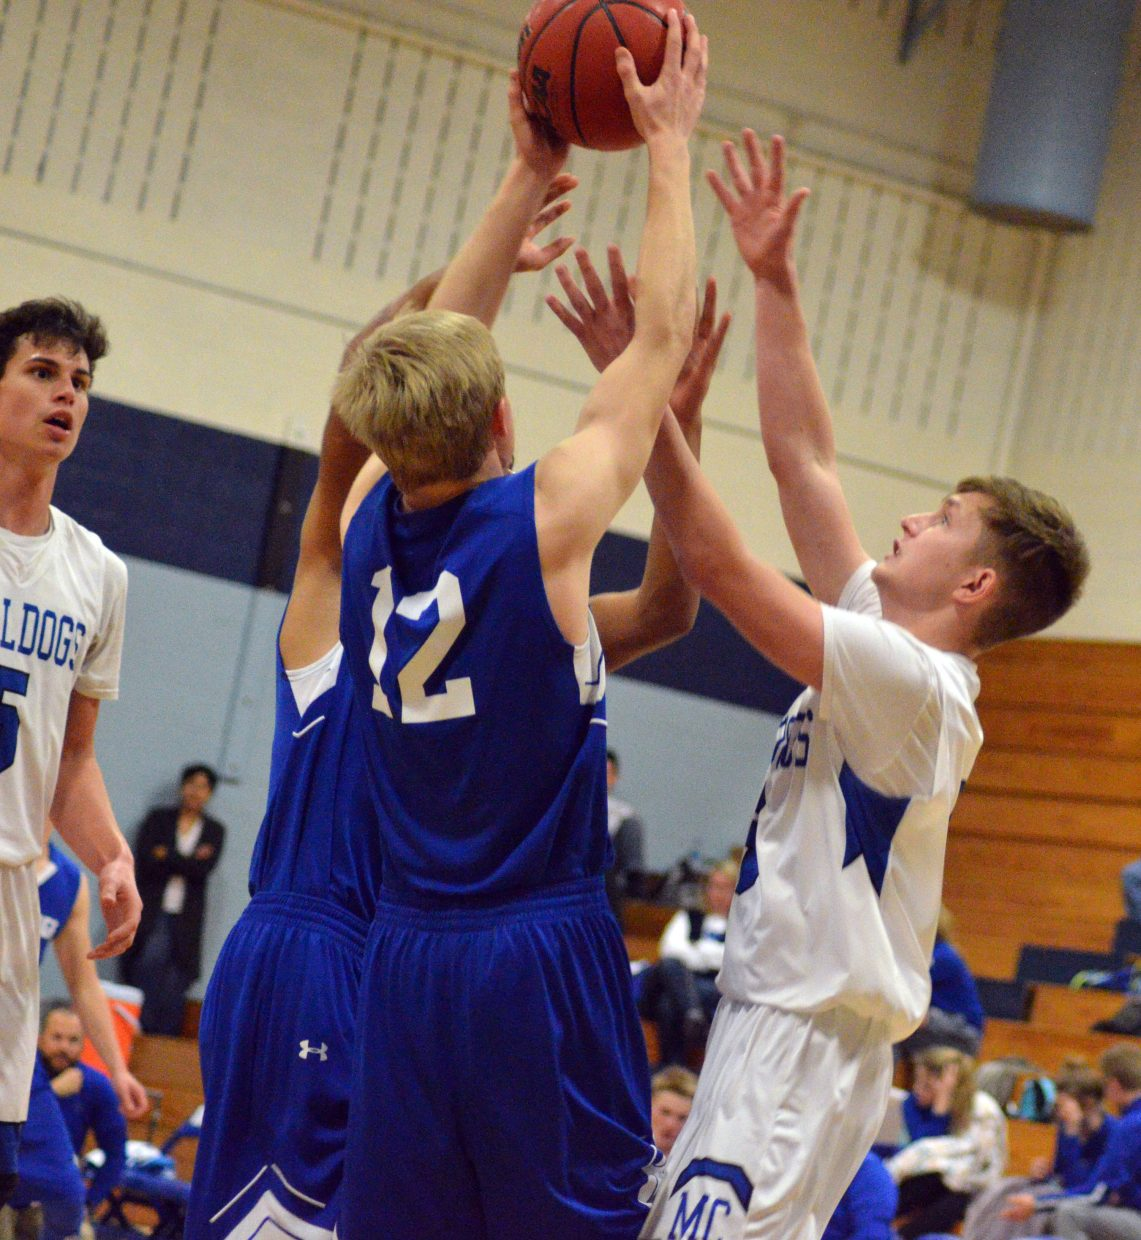 Moffat County High School's Brendan Beaver fights for a rebound.